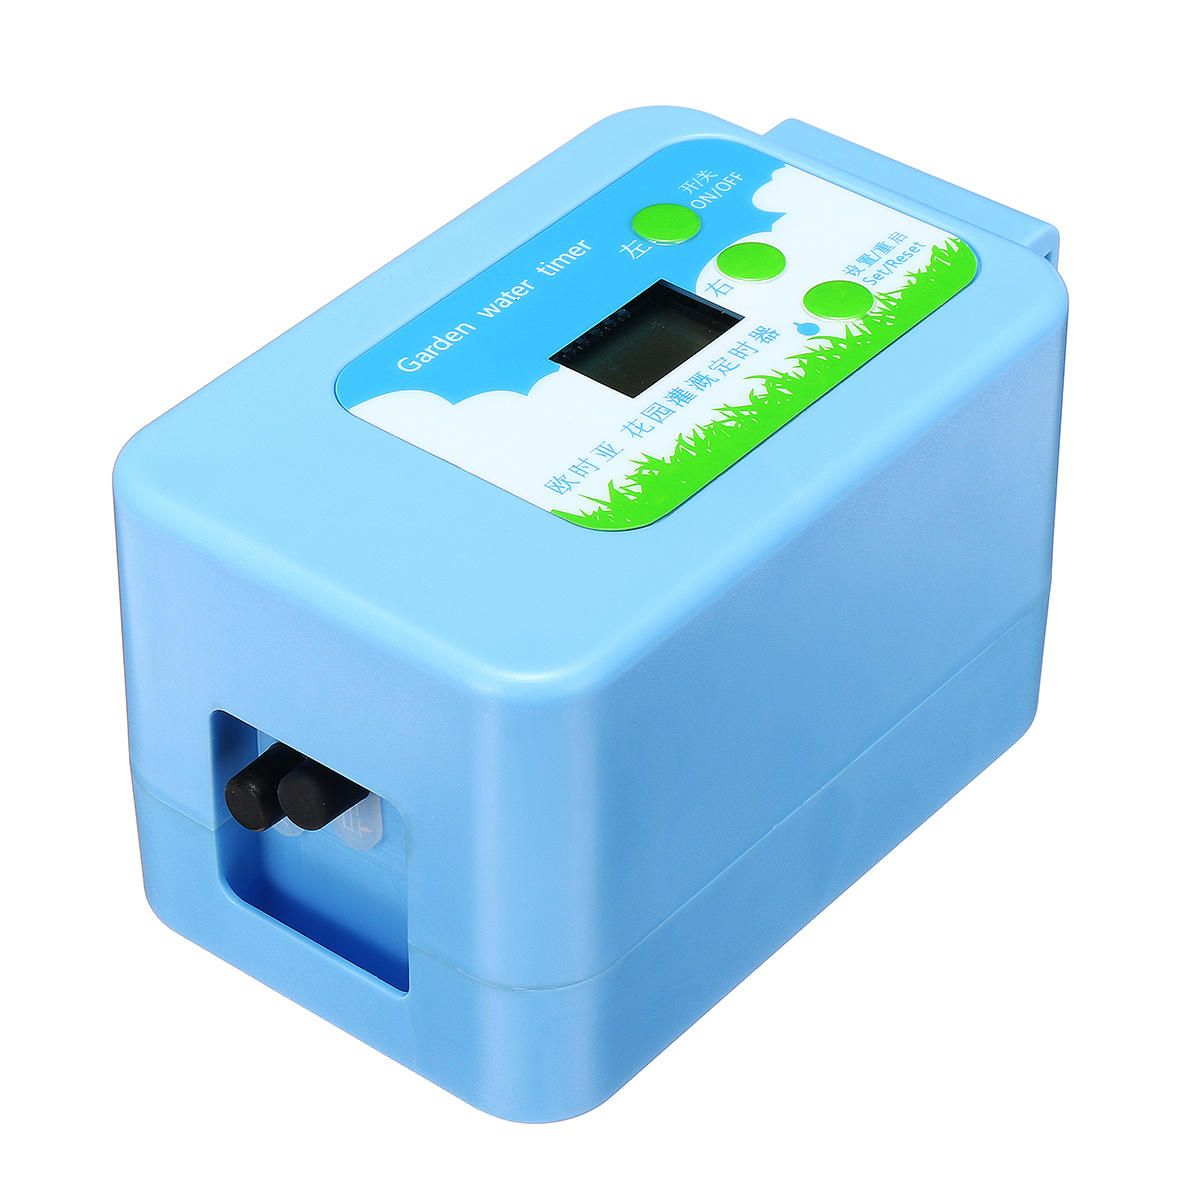 DMQ US$39.37 Garden DIY Micro Drip Auto Irrigation Timer Self Plants Flowers Water Control System with 10M Hose